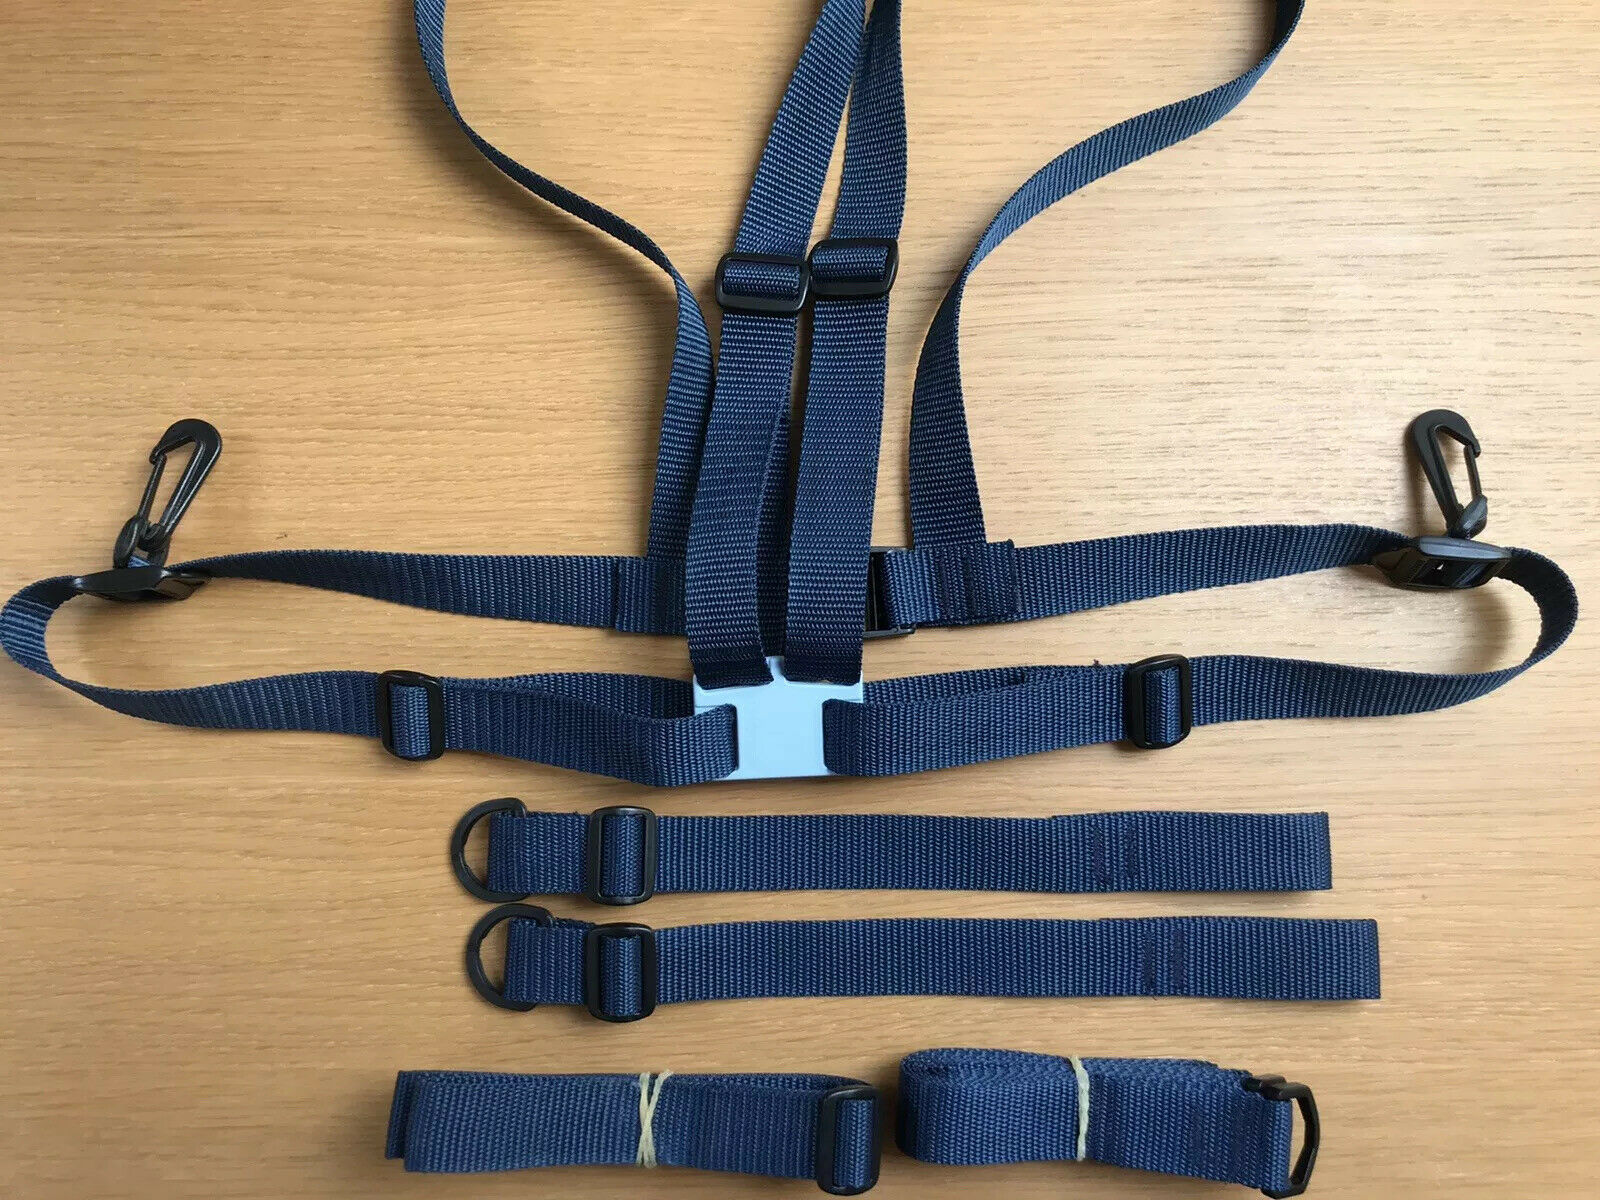 Navy Adult Baby Harness, Walking Reins, Anchor, Crotch Straps (INT. POST PAID)!